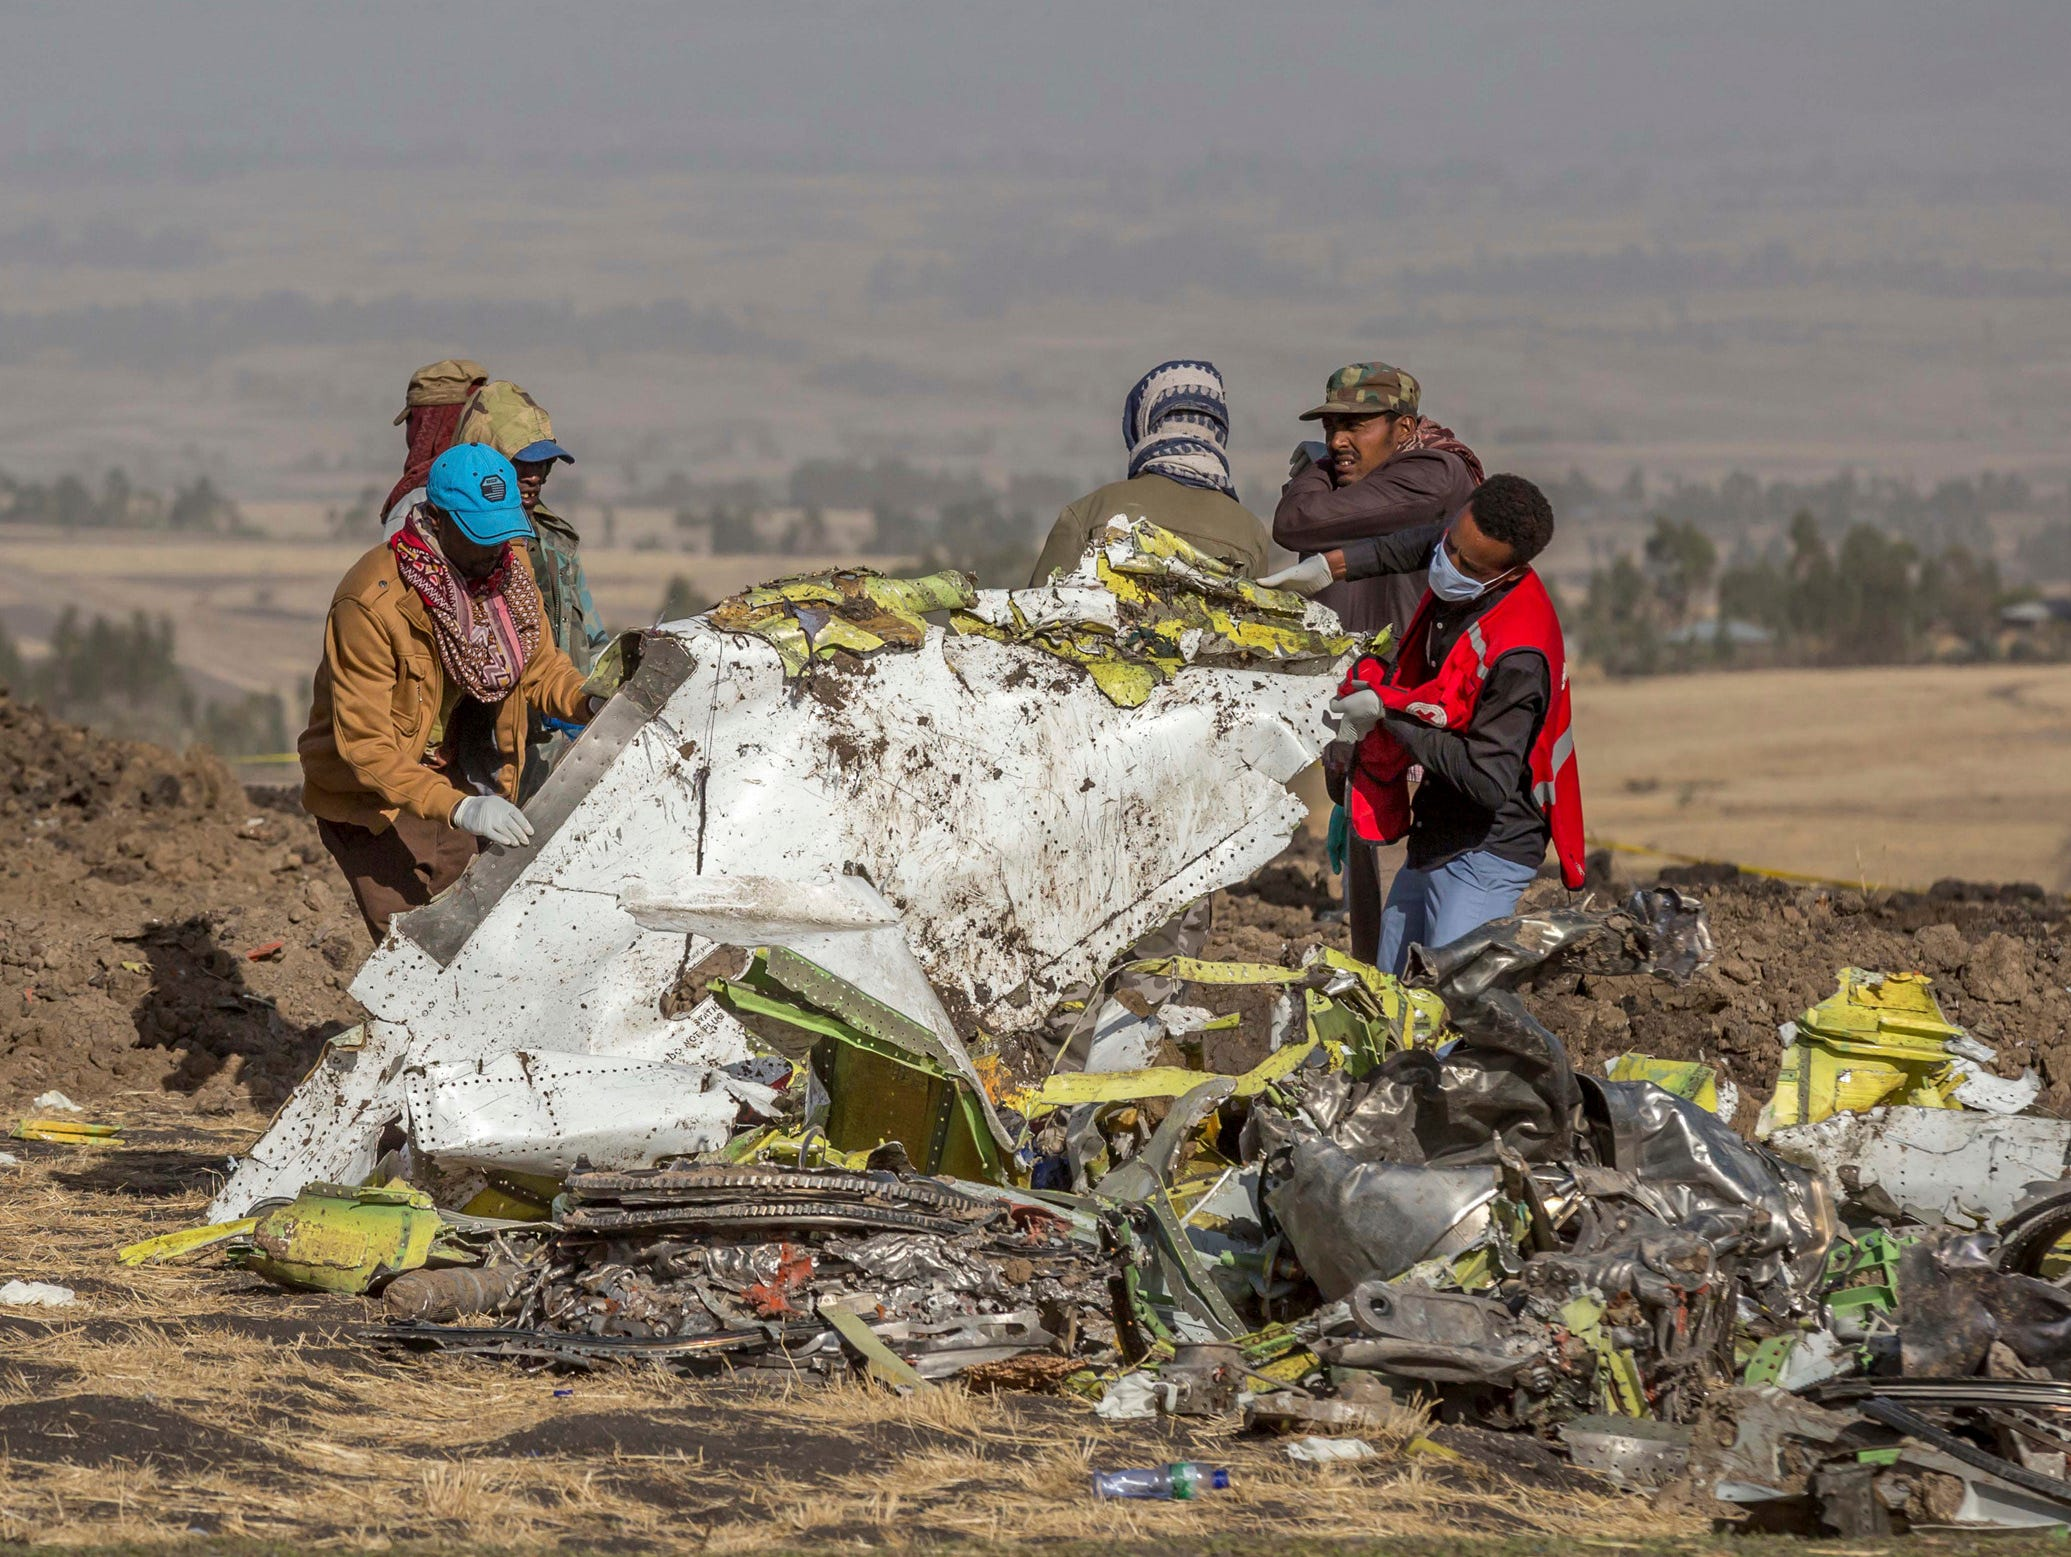 Rescuers work at the scene of an Ethiopian Airlines flight crash near Bishoftu, or Debre Zeit, south of Addis Ababa,  Ethiopia, Monday, March 11, 2019. A spokesman says Ethiopian Airlines has grounded all its Boeing 737 Max 8 aircraft as a safety precaution, following the crash of one of its planes in which 157 people were killed.